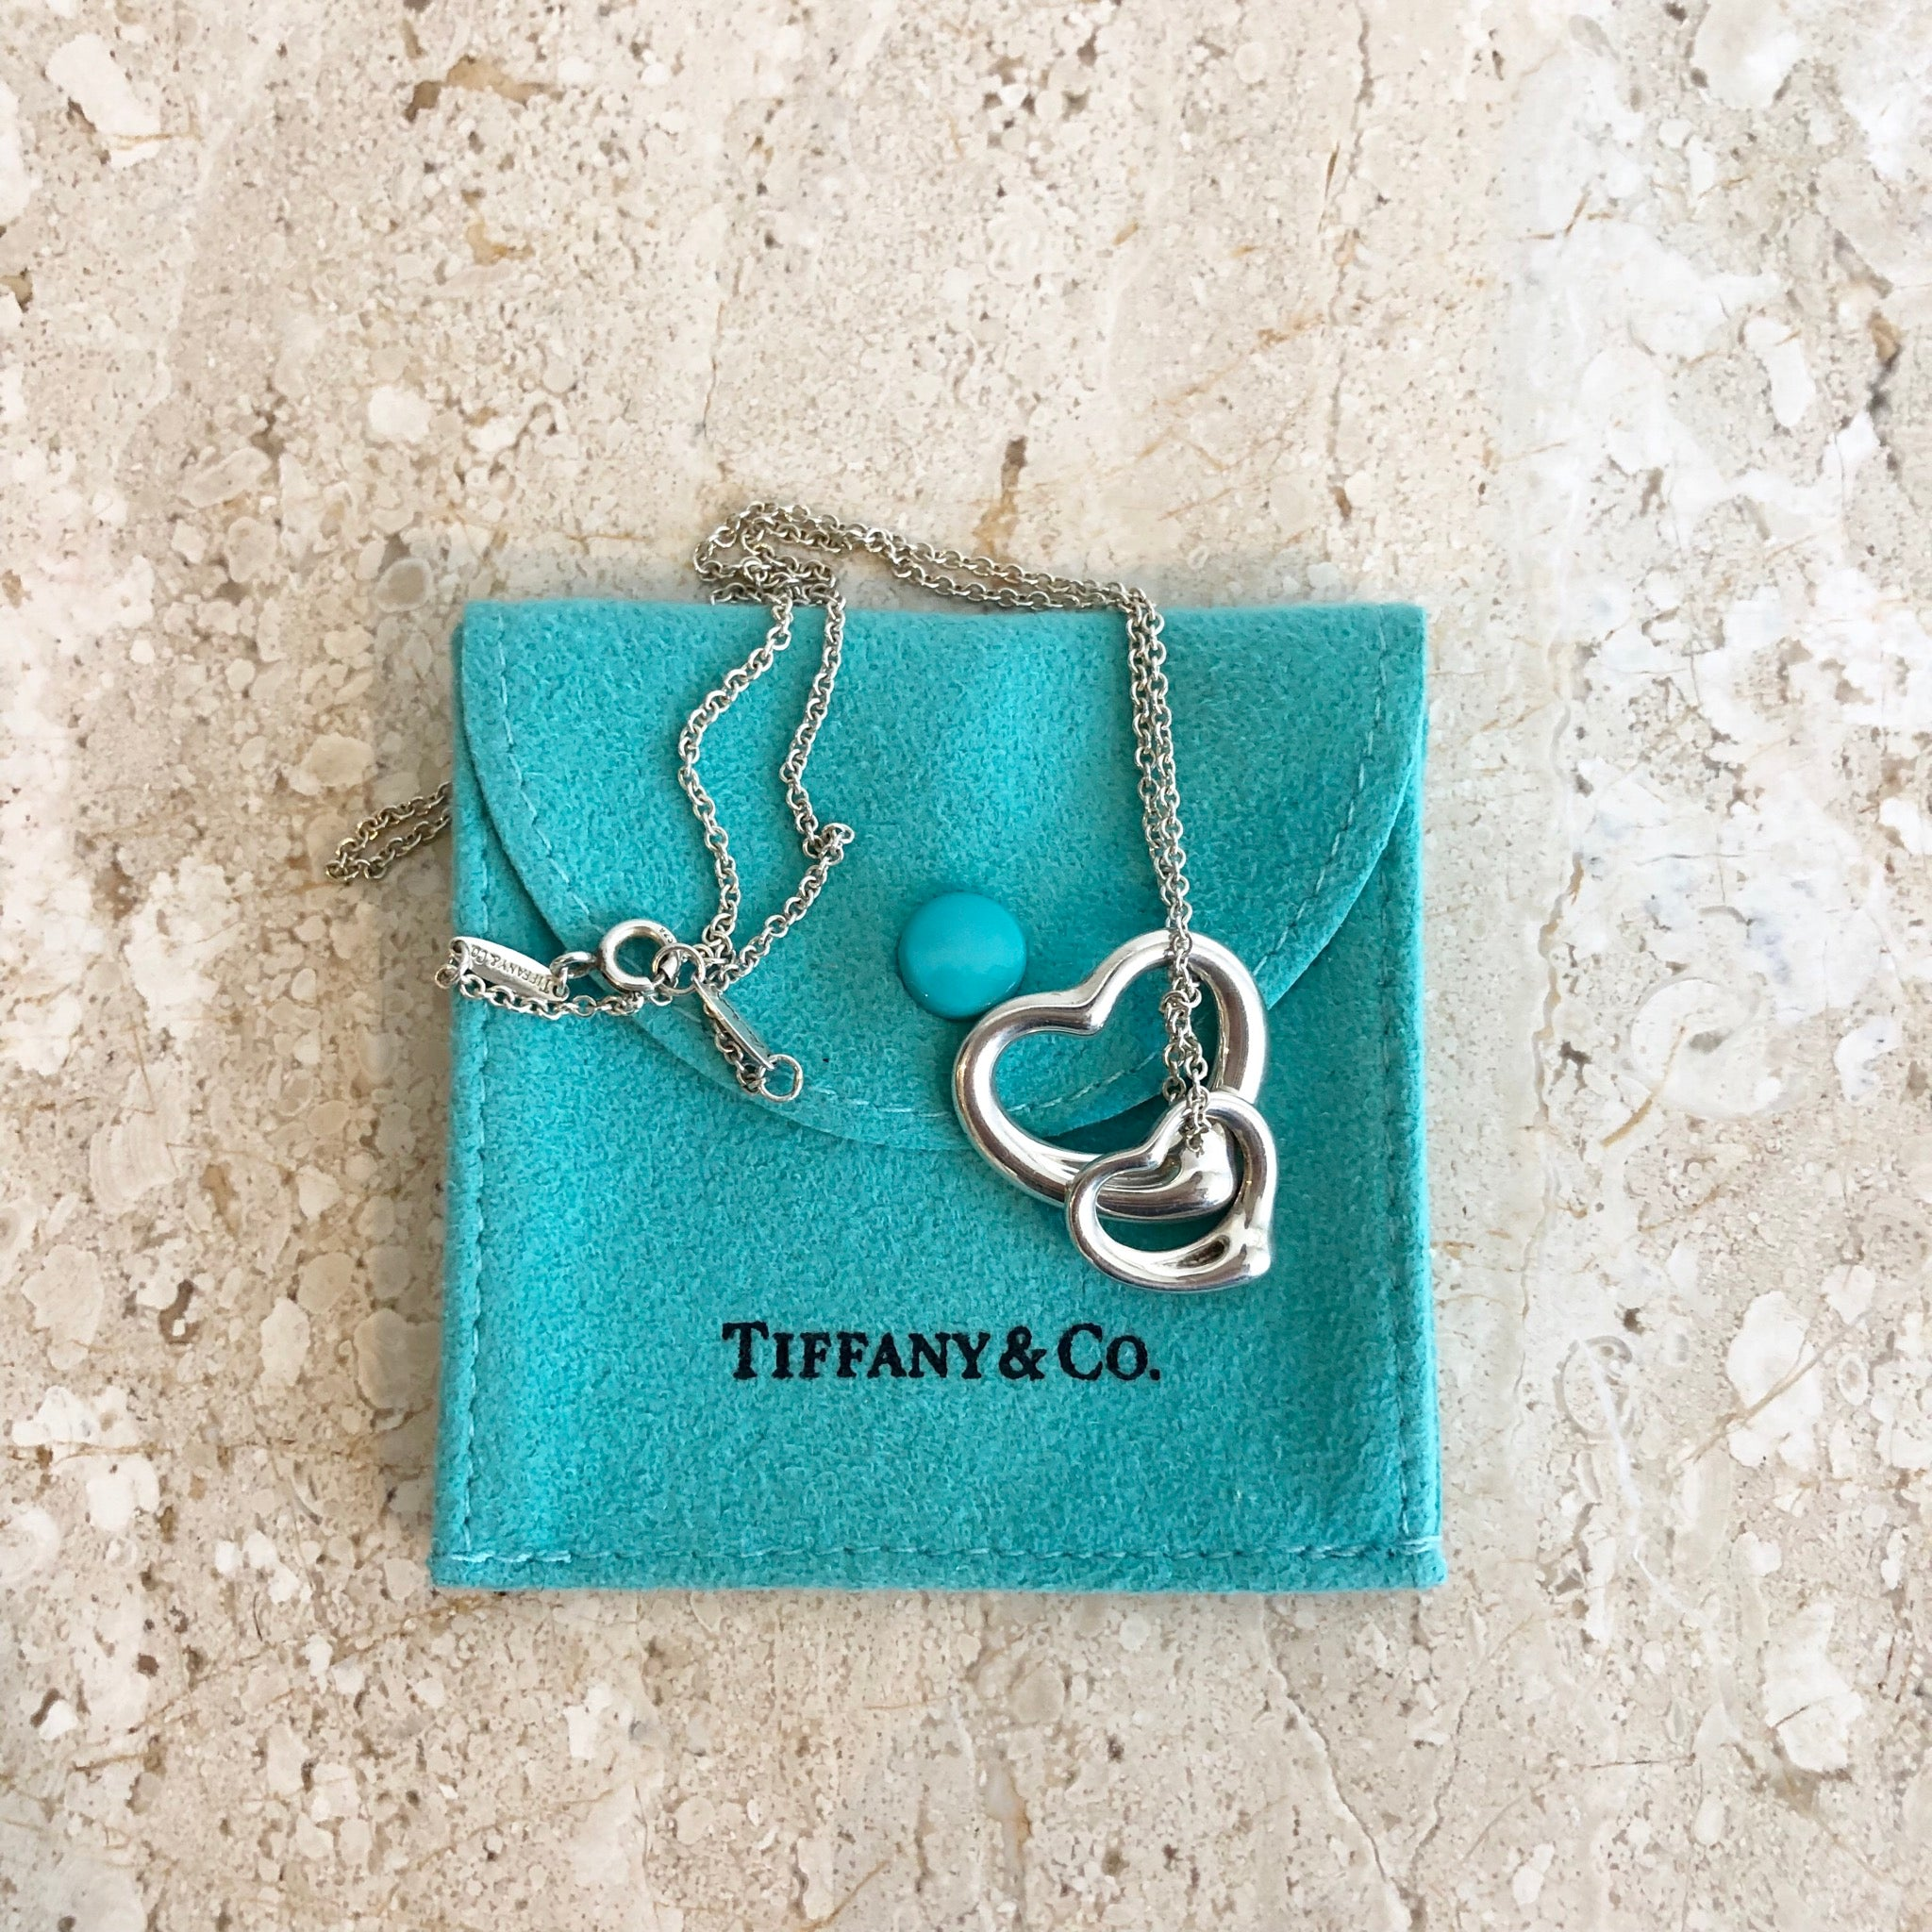 Authentic TIFFANY & CO. Sterling Silver Double Open Heart Pendant